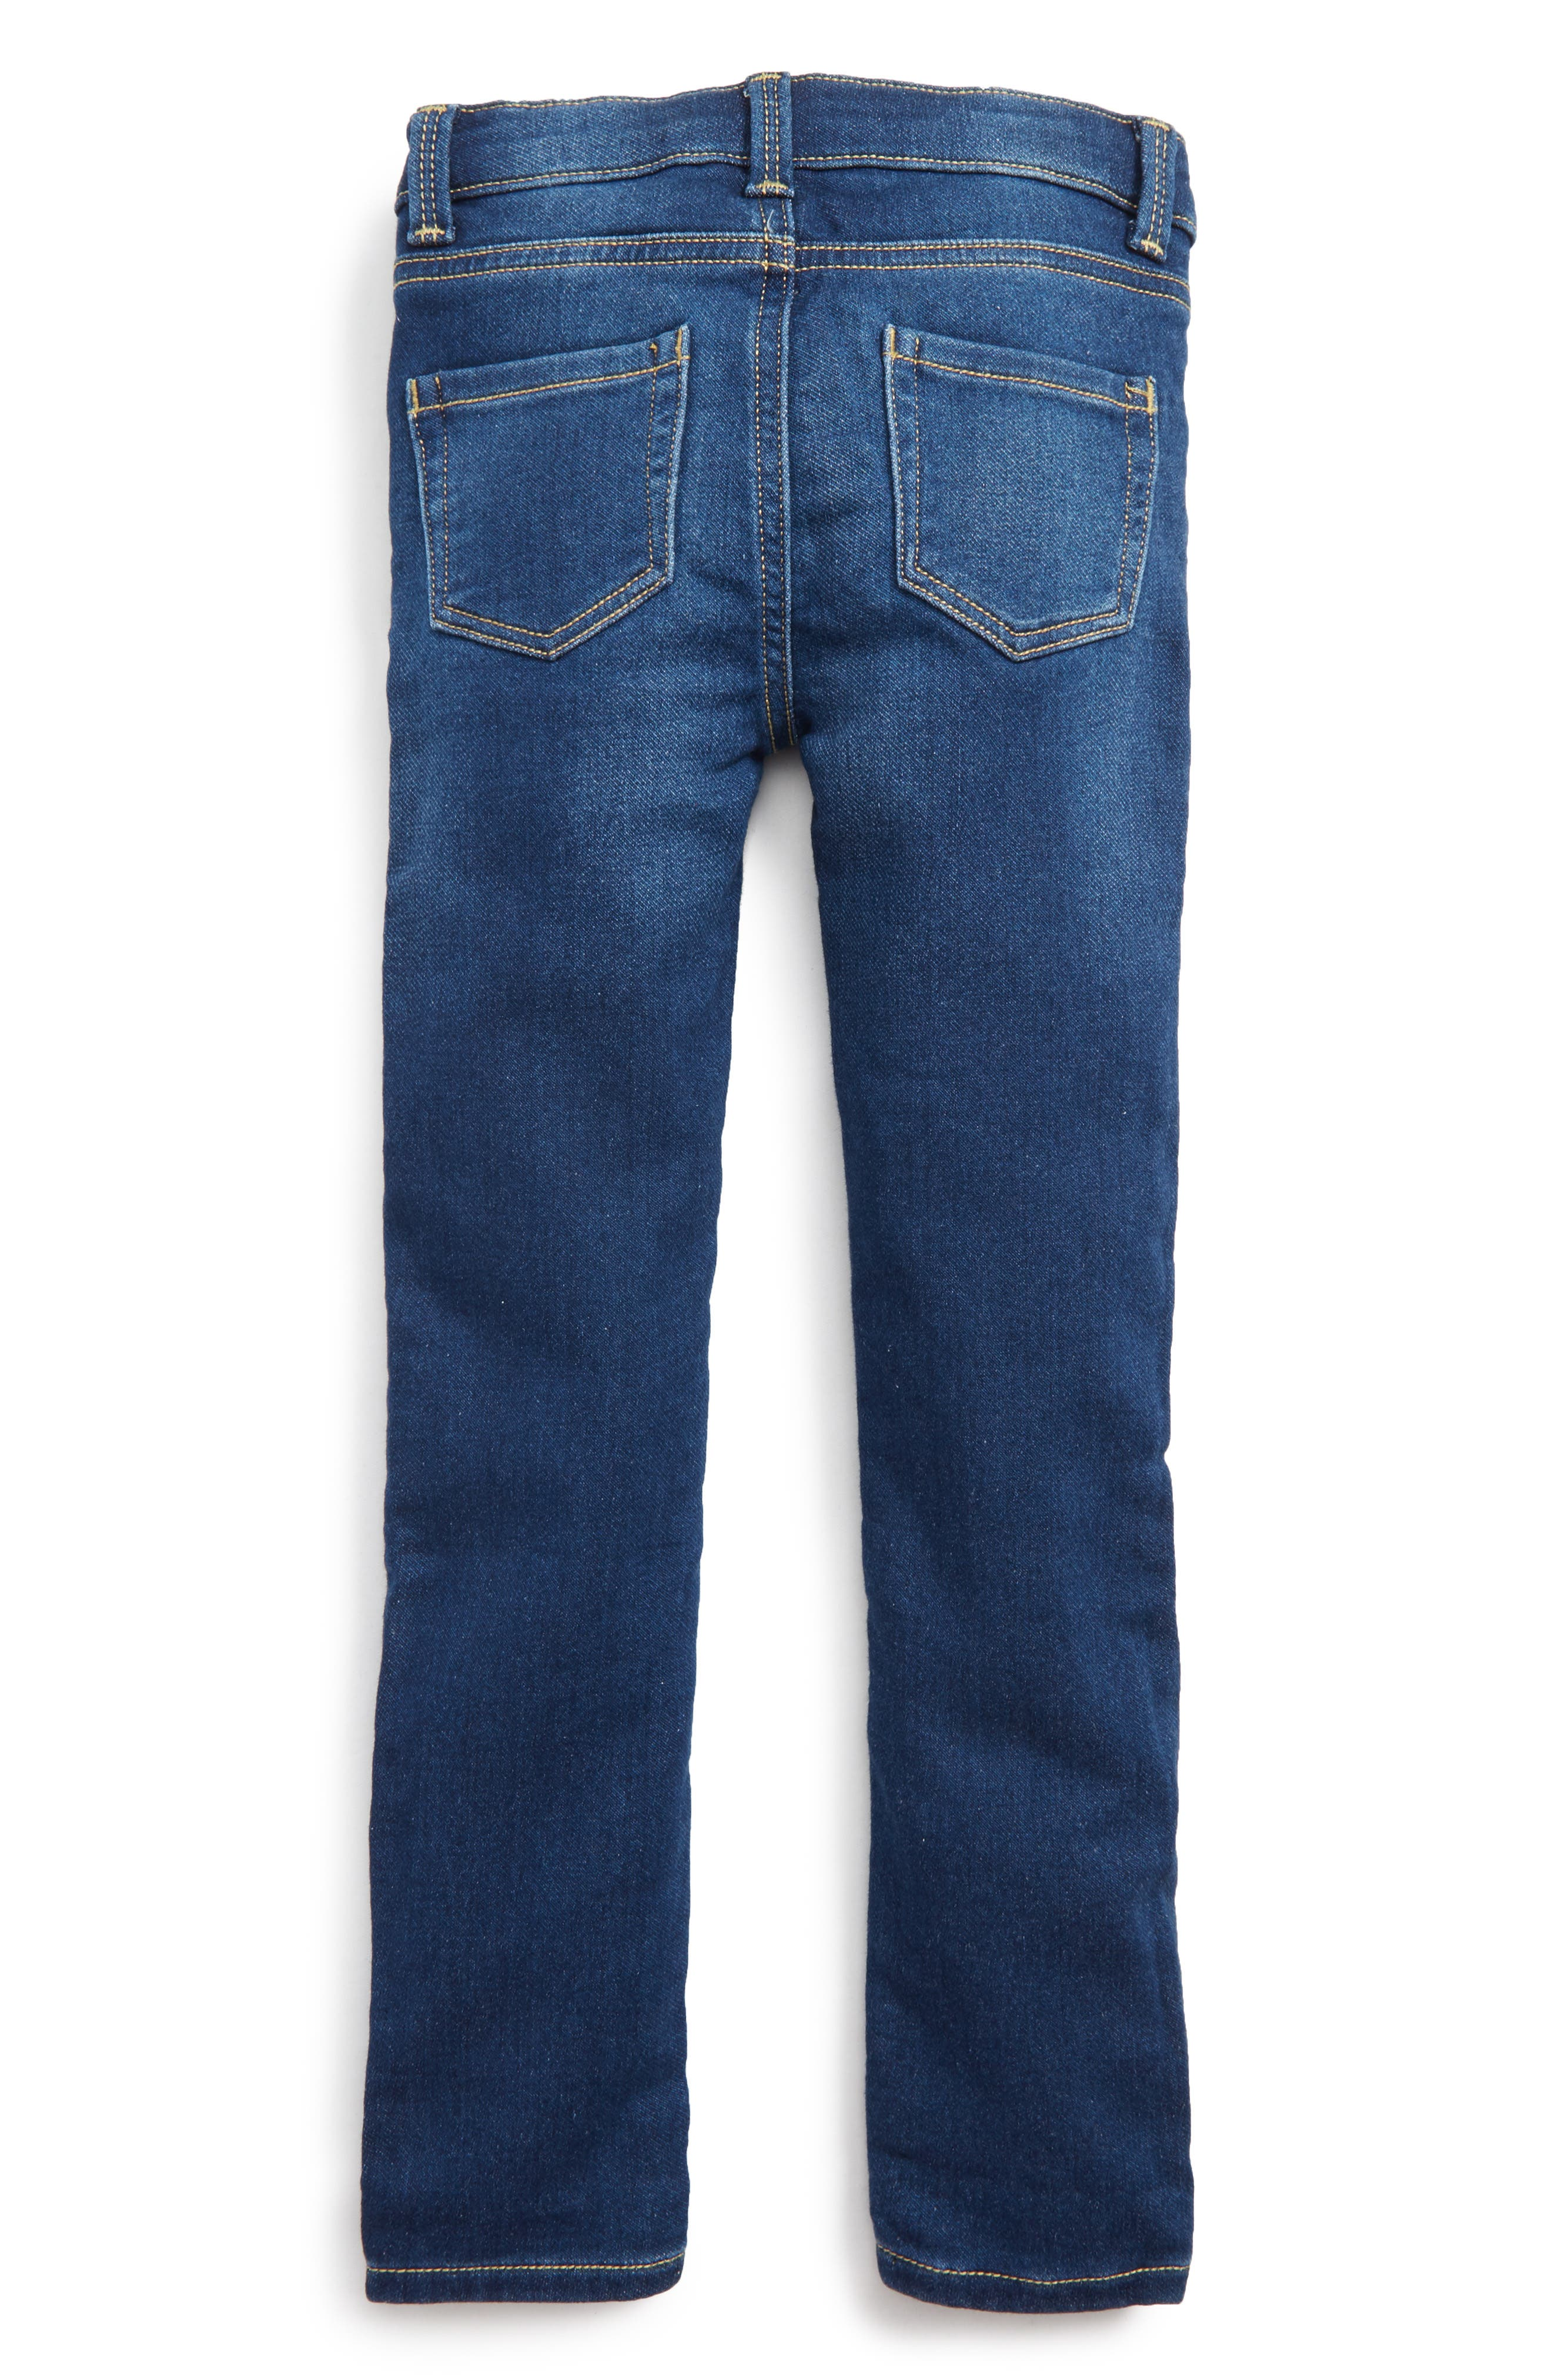 Taylor Skinny Jeans,                         Main,                         color, 416